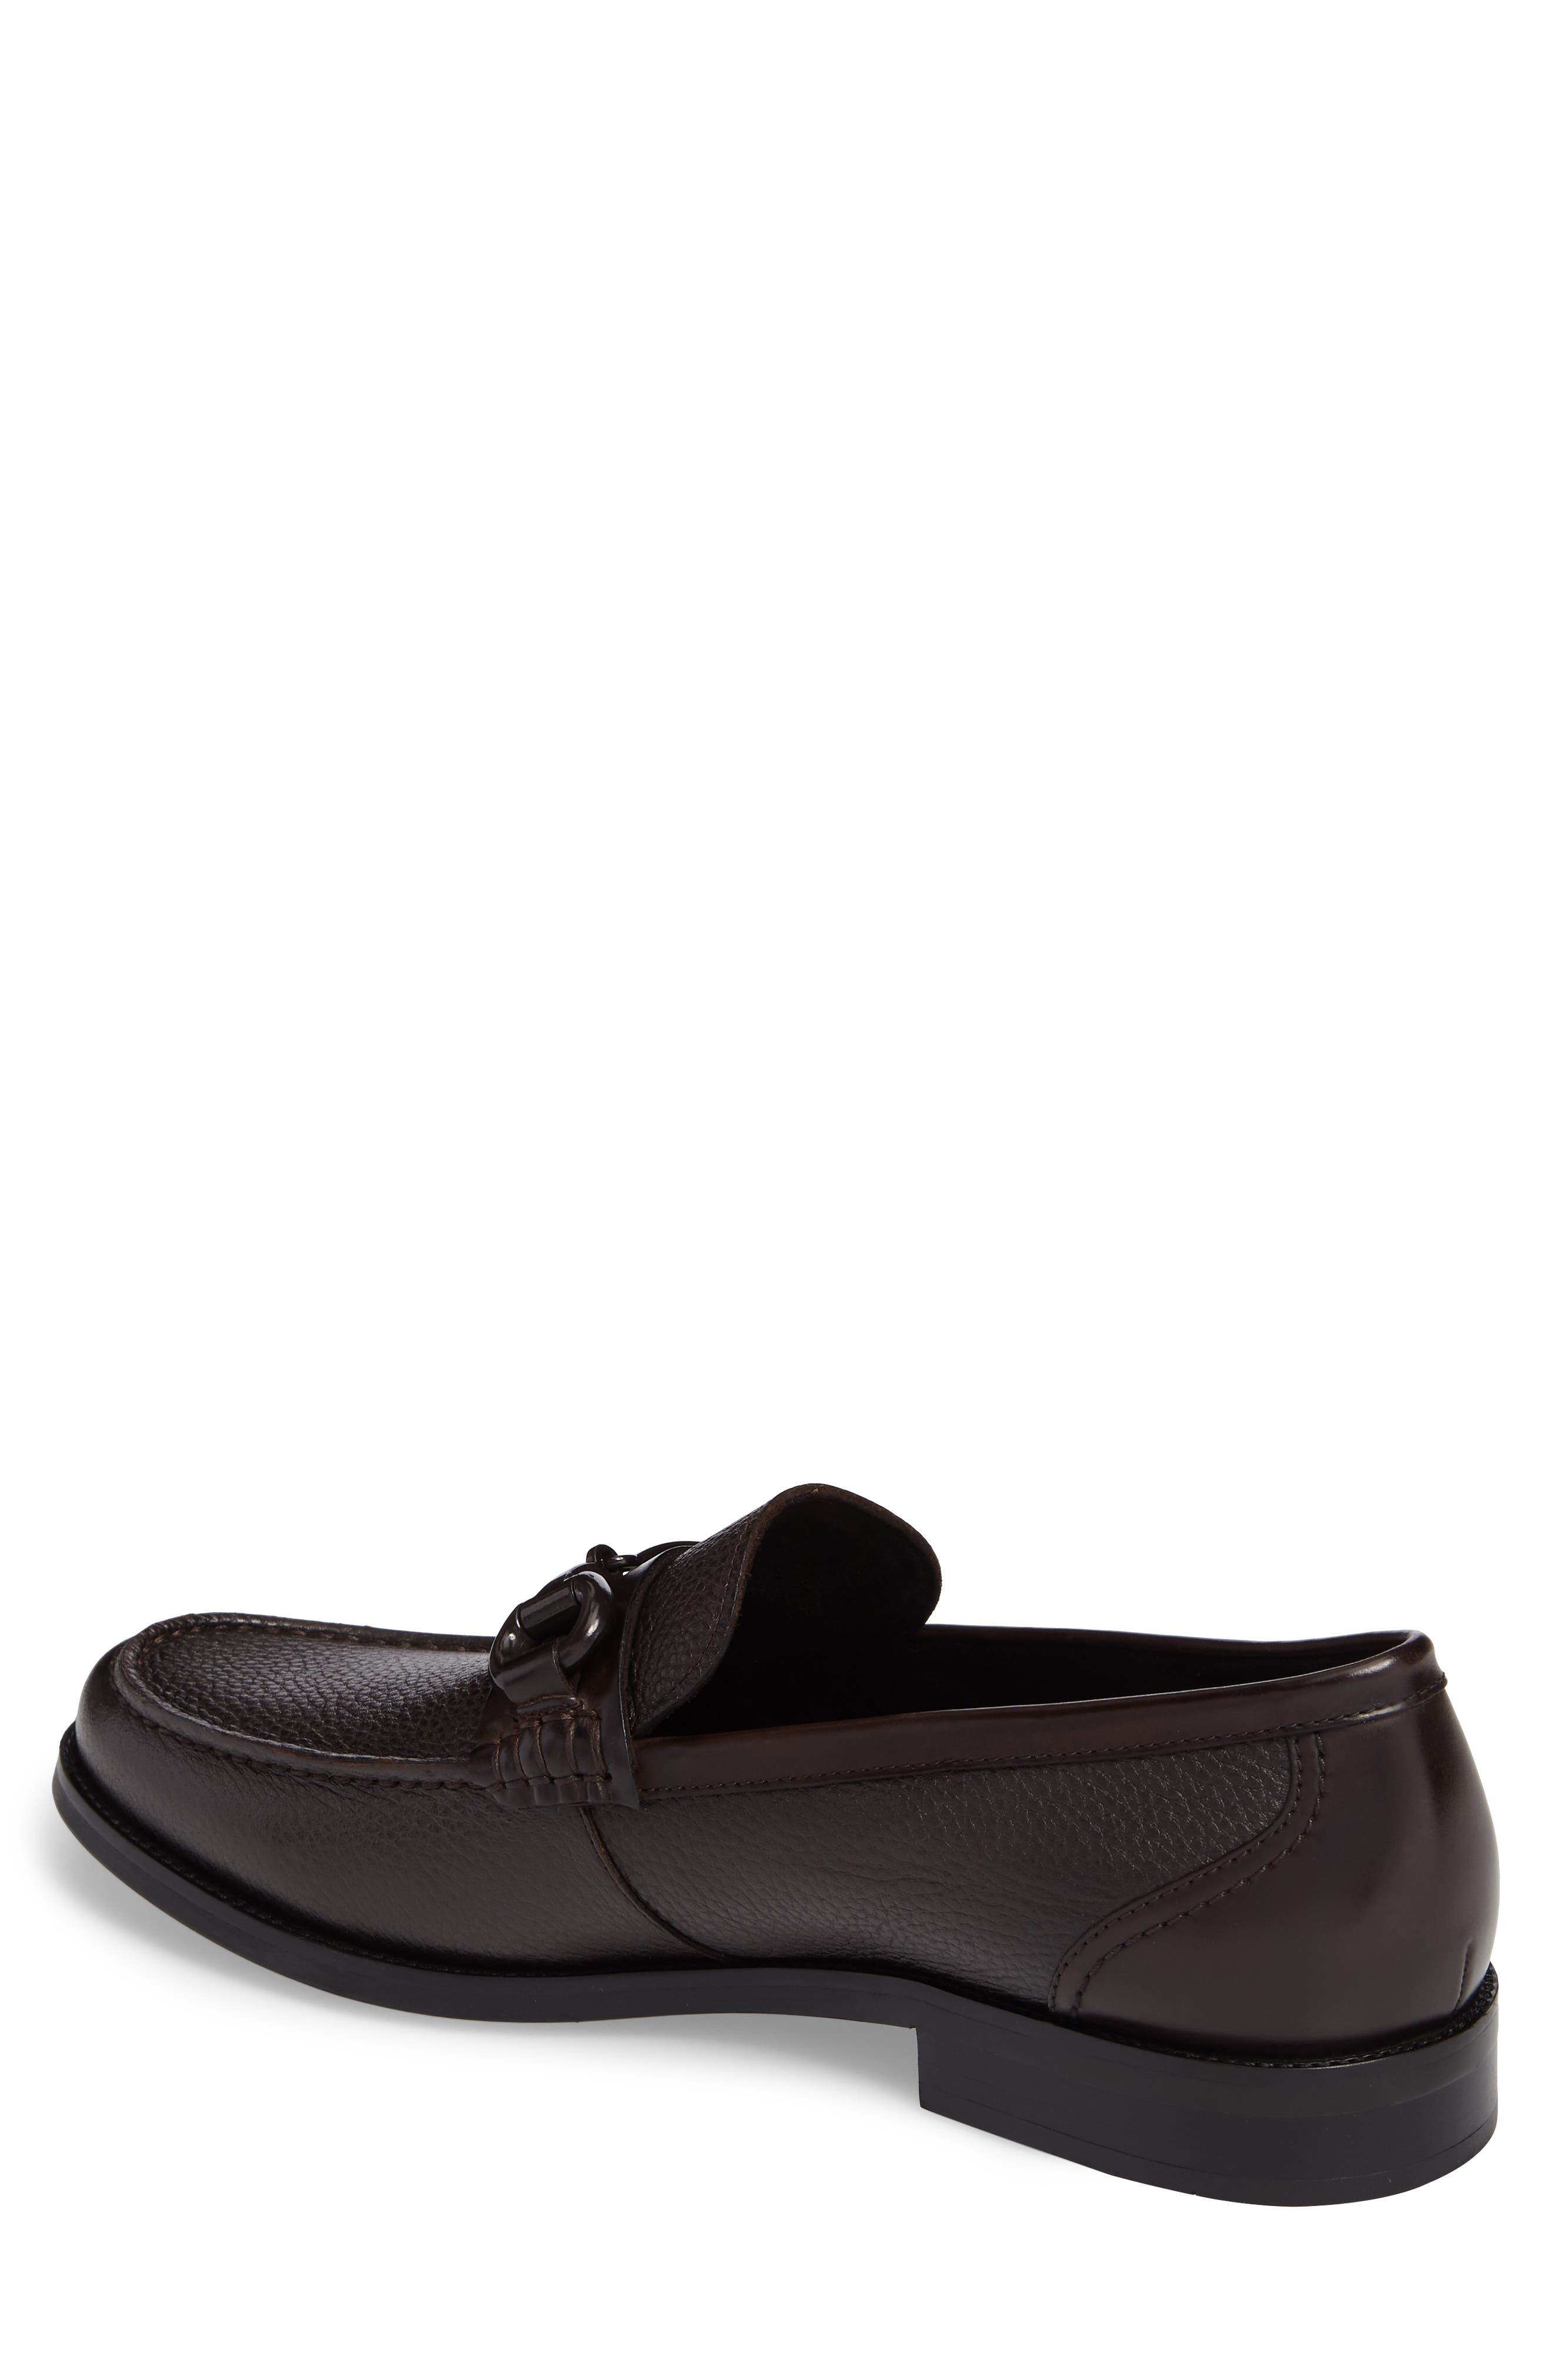 Alternate Image 2  - Kenneth Cole New York Bit Loafer (Men)